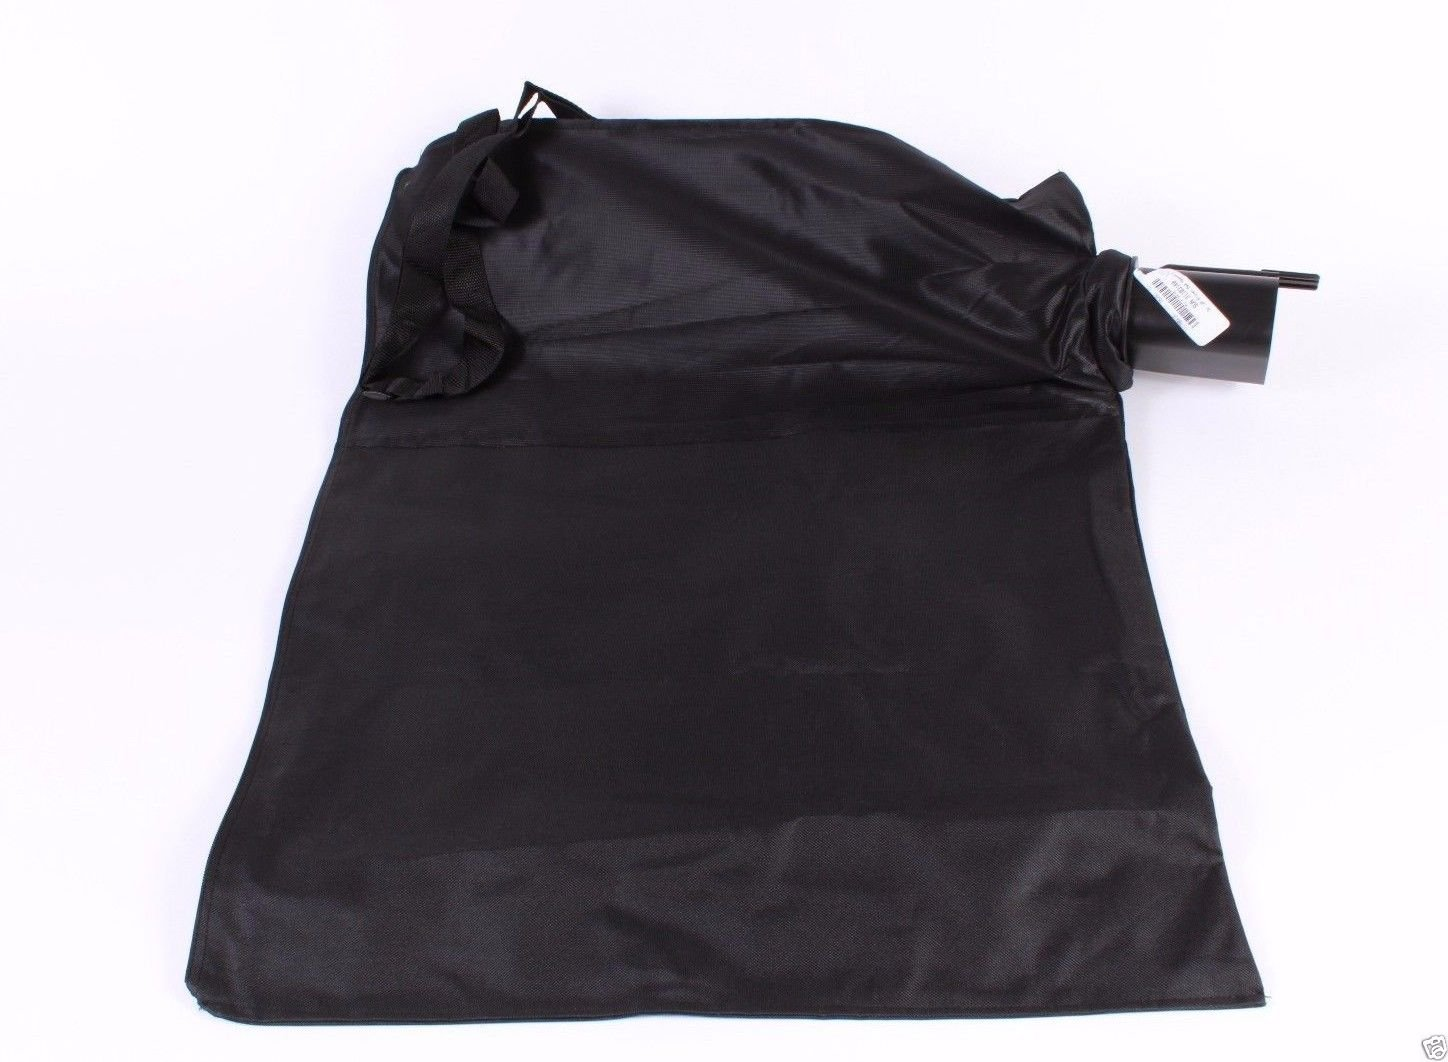 Genuine GreenWorks 31103148 Leaf Blower Vacuum Bag for 24022 24072 ,product_by: powered_by_moyer ,ket24231821218295